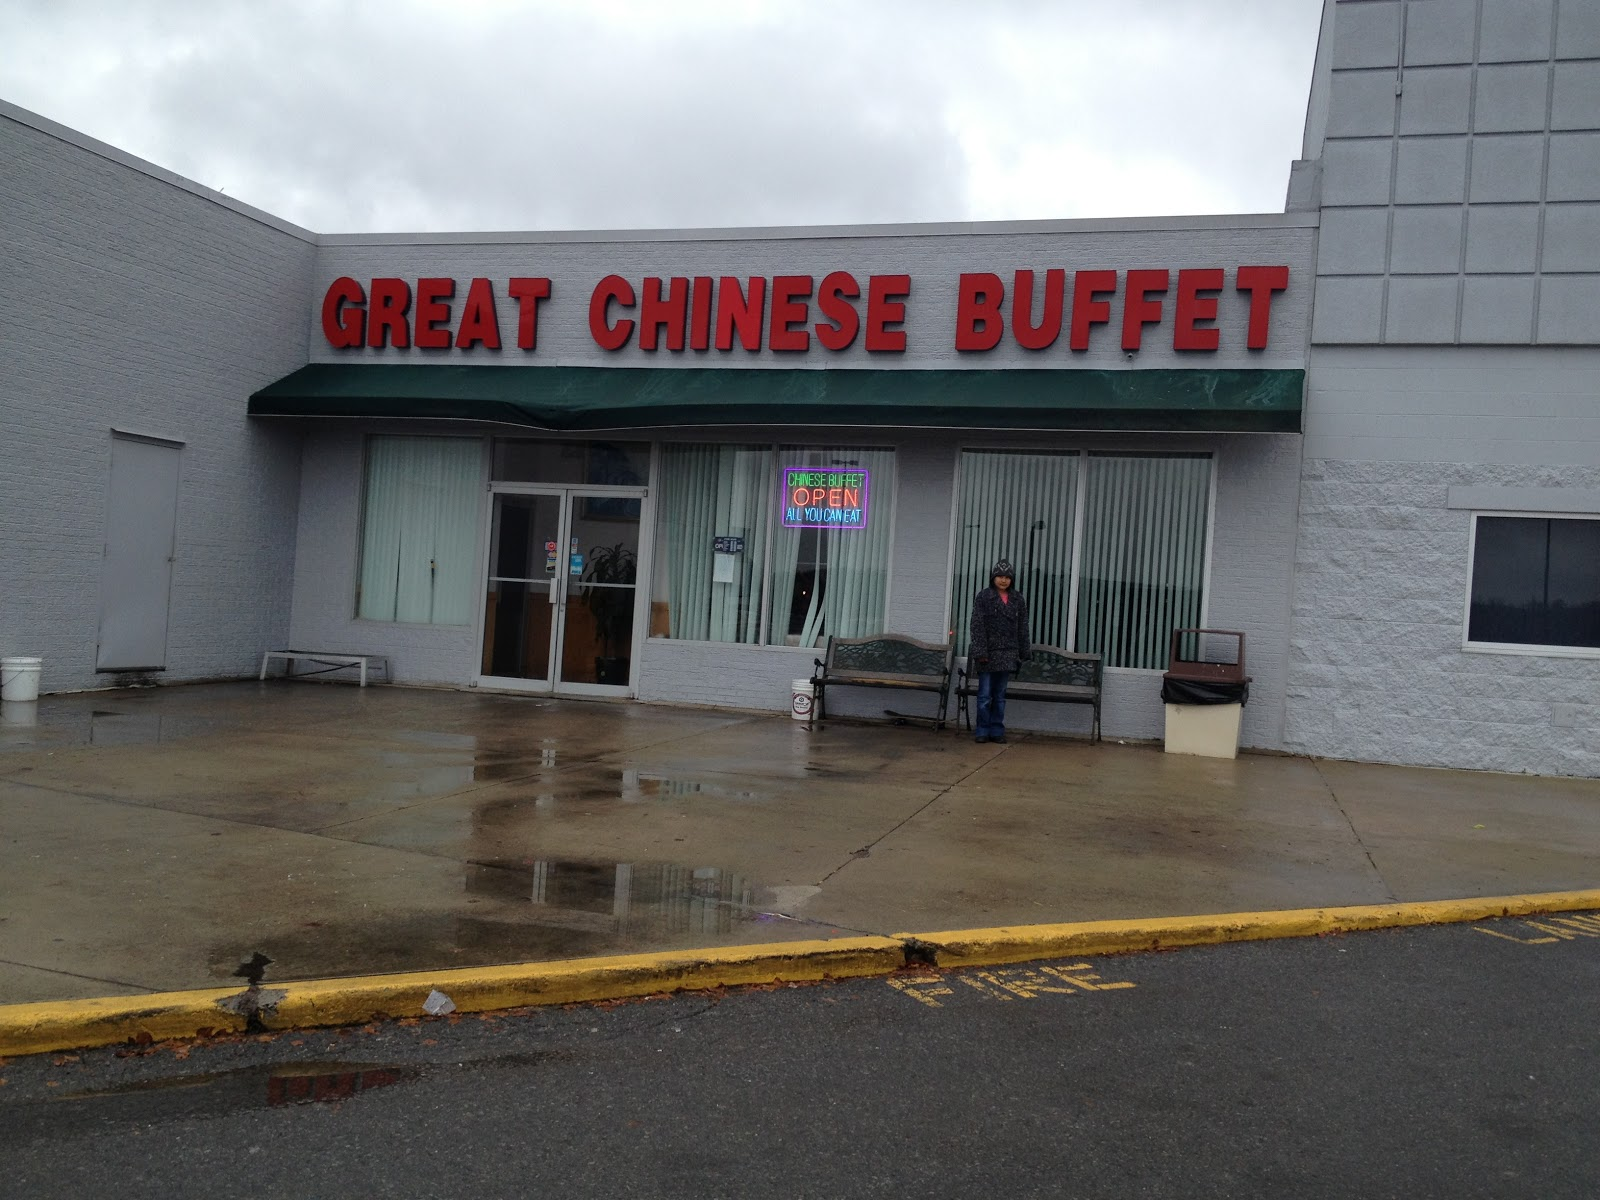 1 Super Buffet Was The Down In Town Place To Go For A Chinese Great Located At Mountaineer Mall 5000 Greenbag